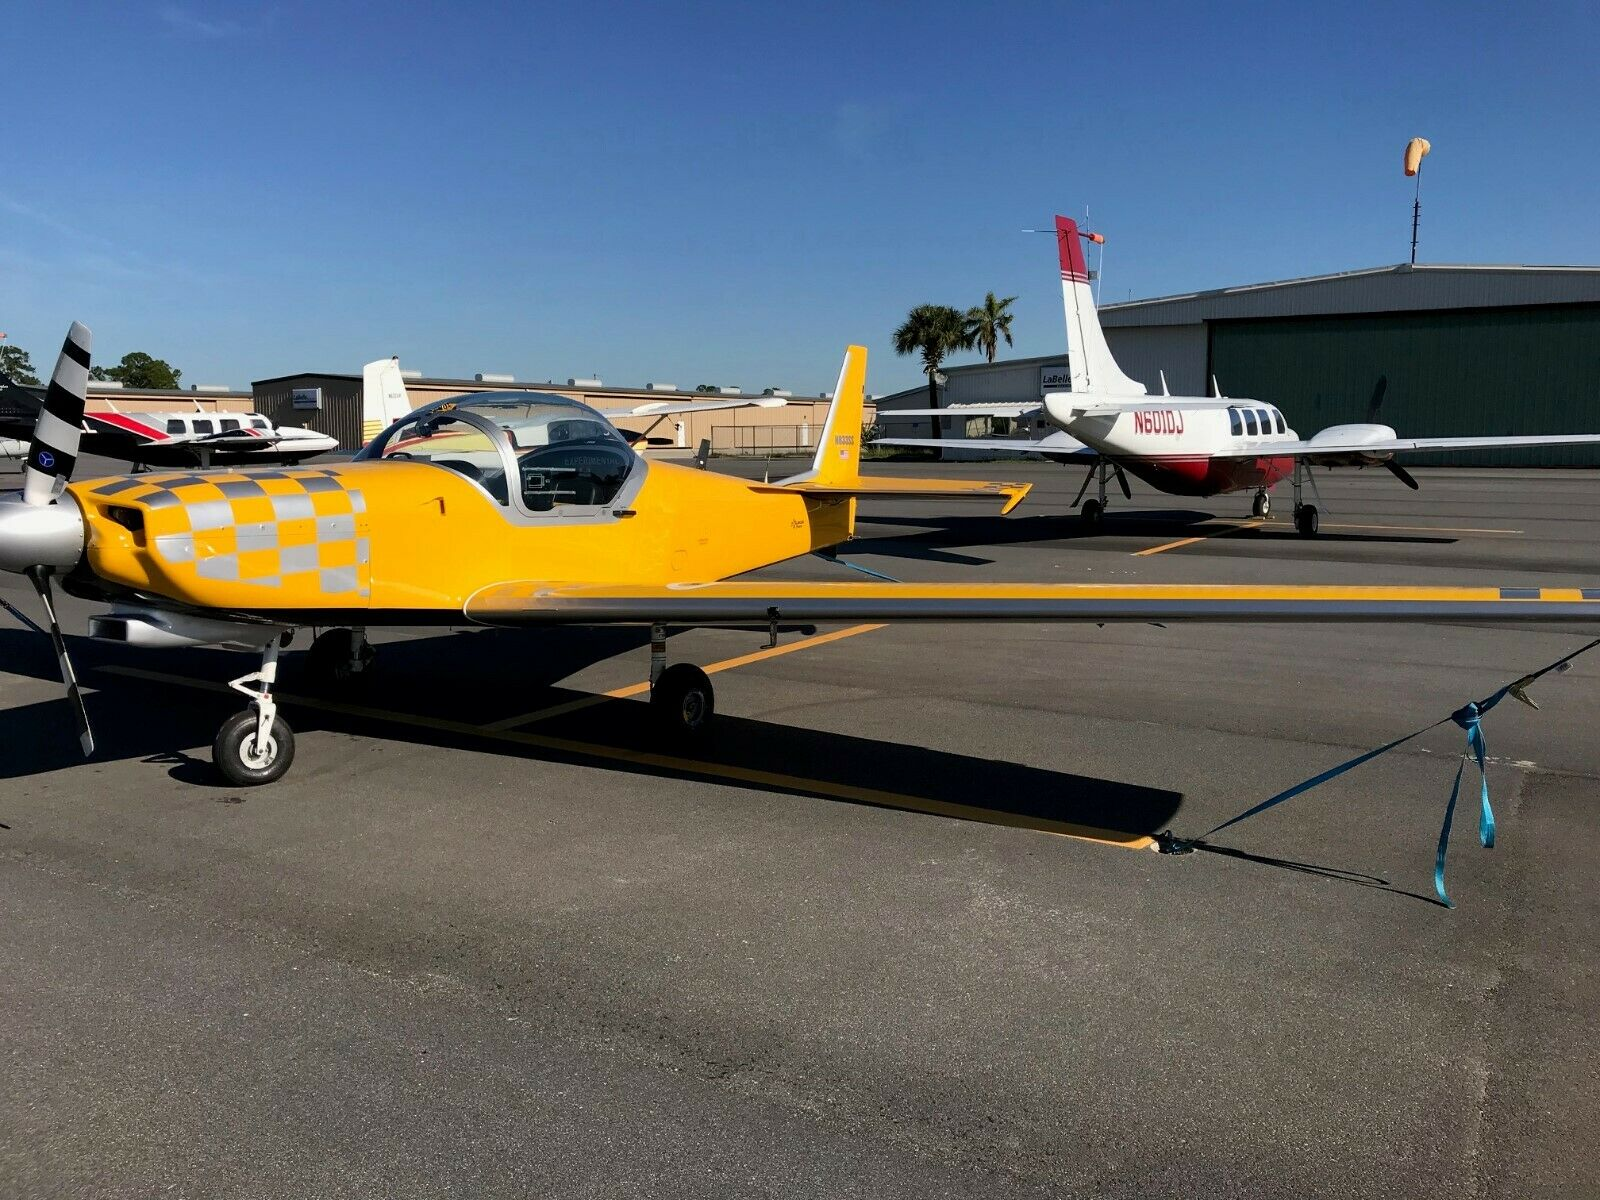 Aerobatic 1996 Slingsby Firefly Model T67 M260 aircraft